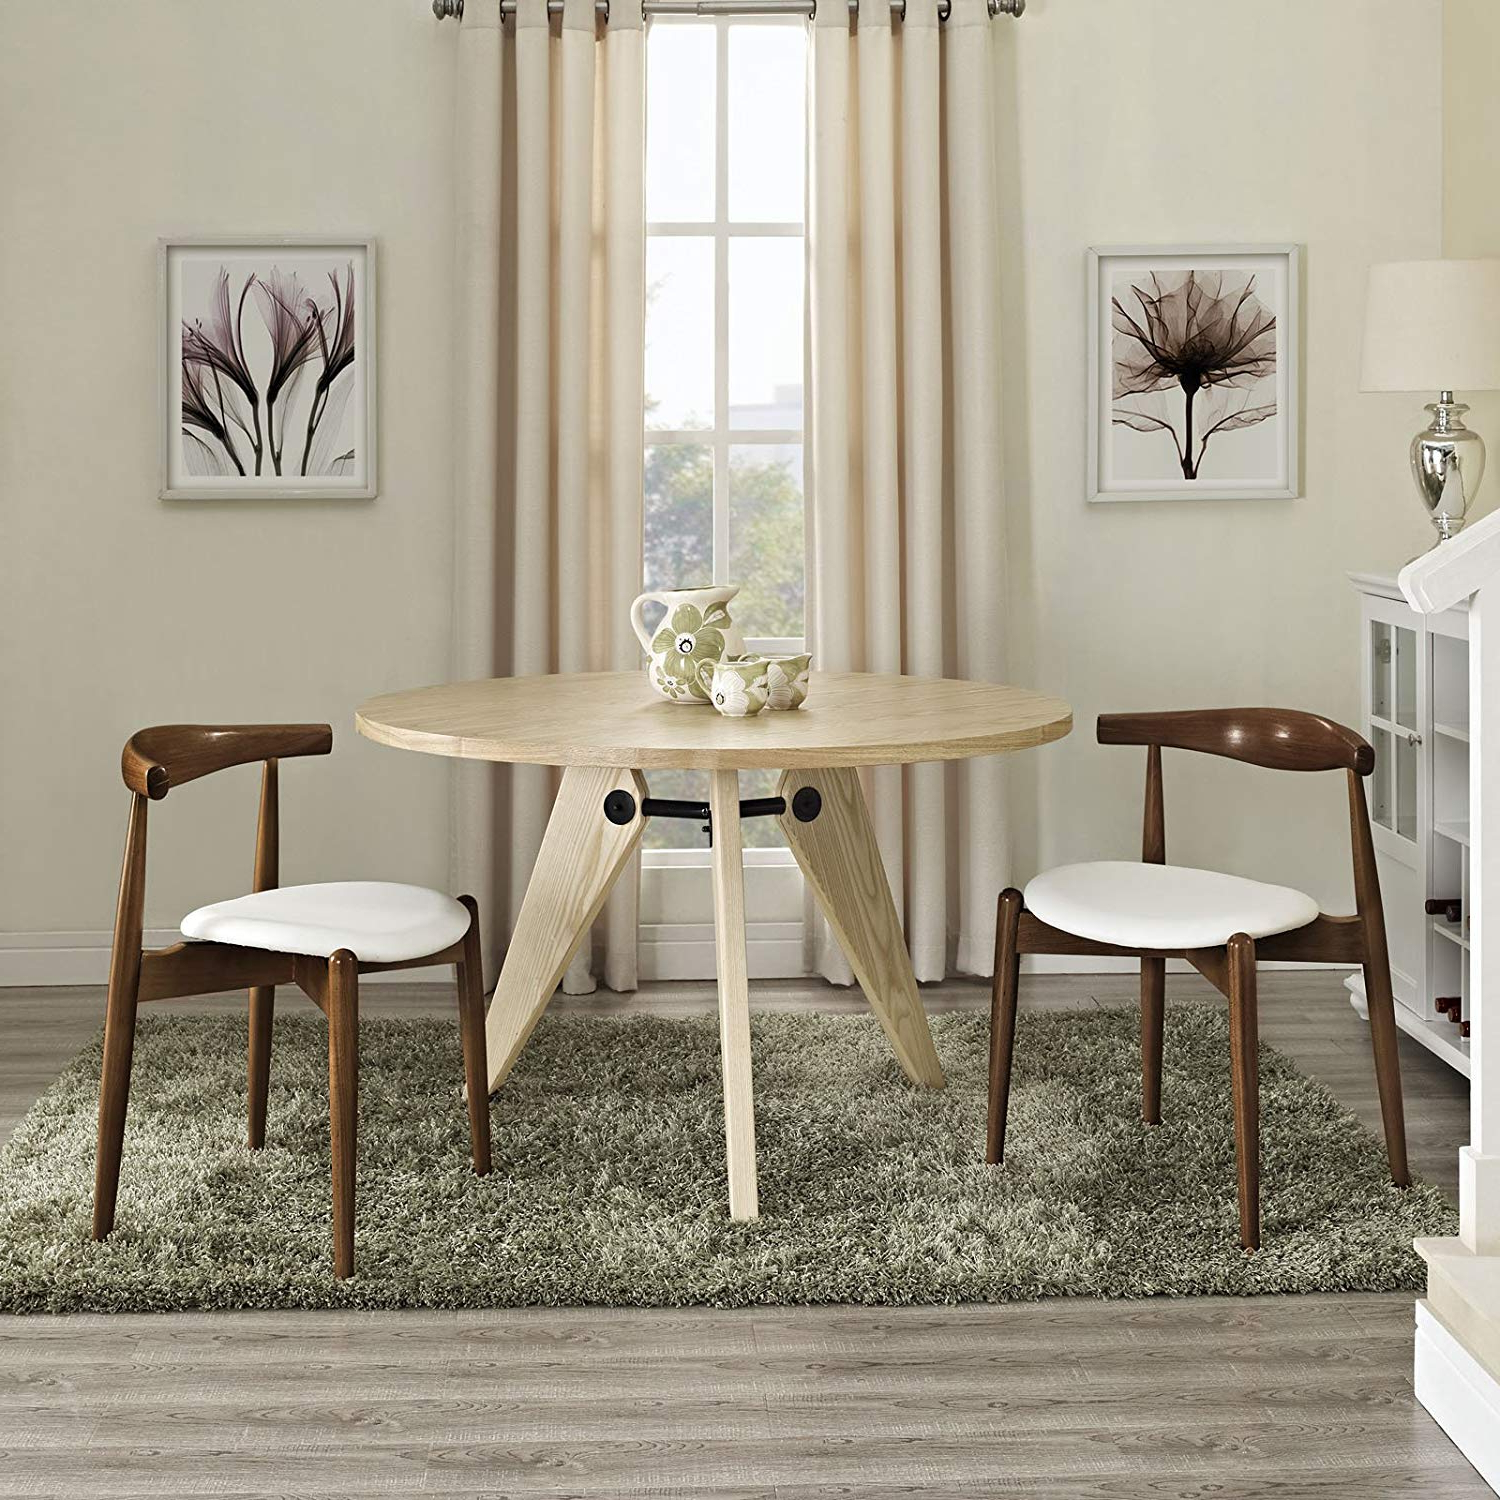 Askern 3 Piece Counter Height Dining Sets (Set Of 3) Pertaining To Most Popular Amazon – Modway Stalwart Beechwood Mid Century Dining Chairs (View 5 of 25)